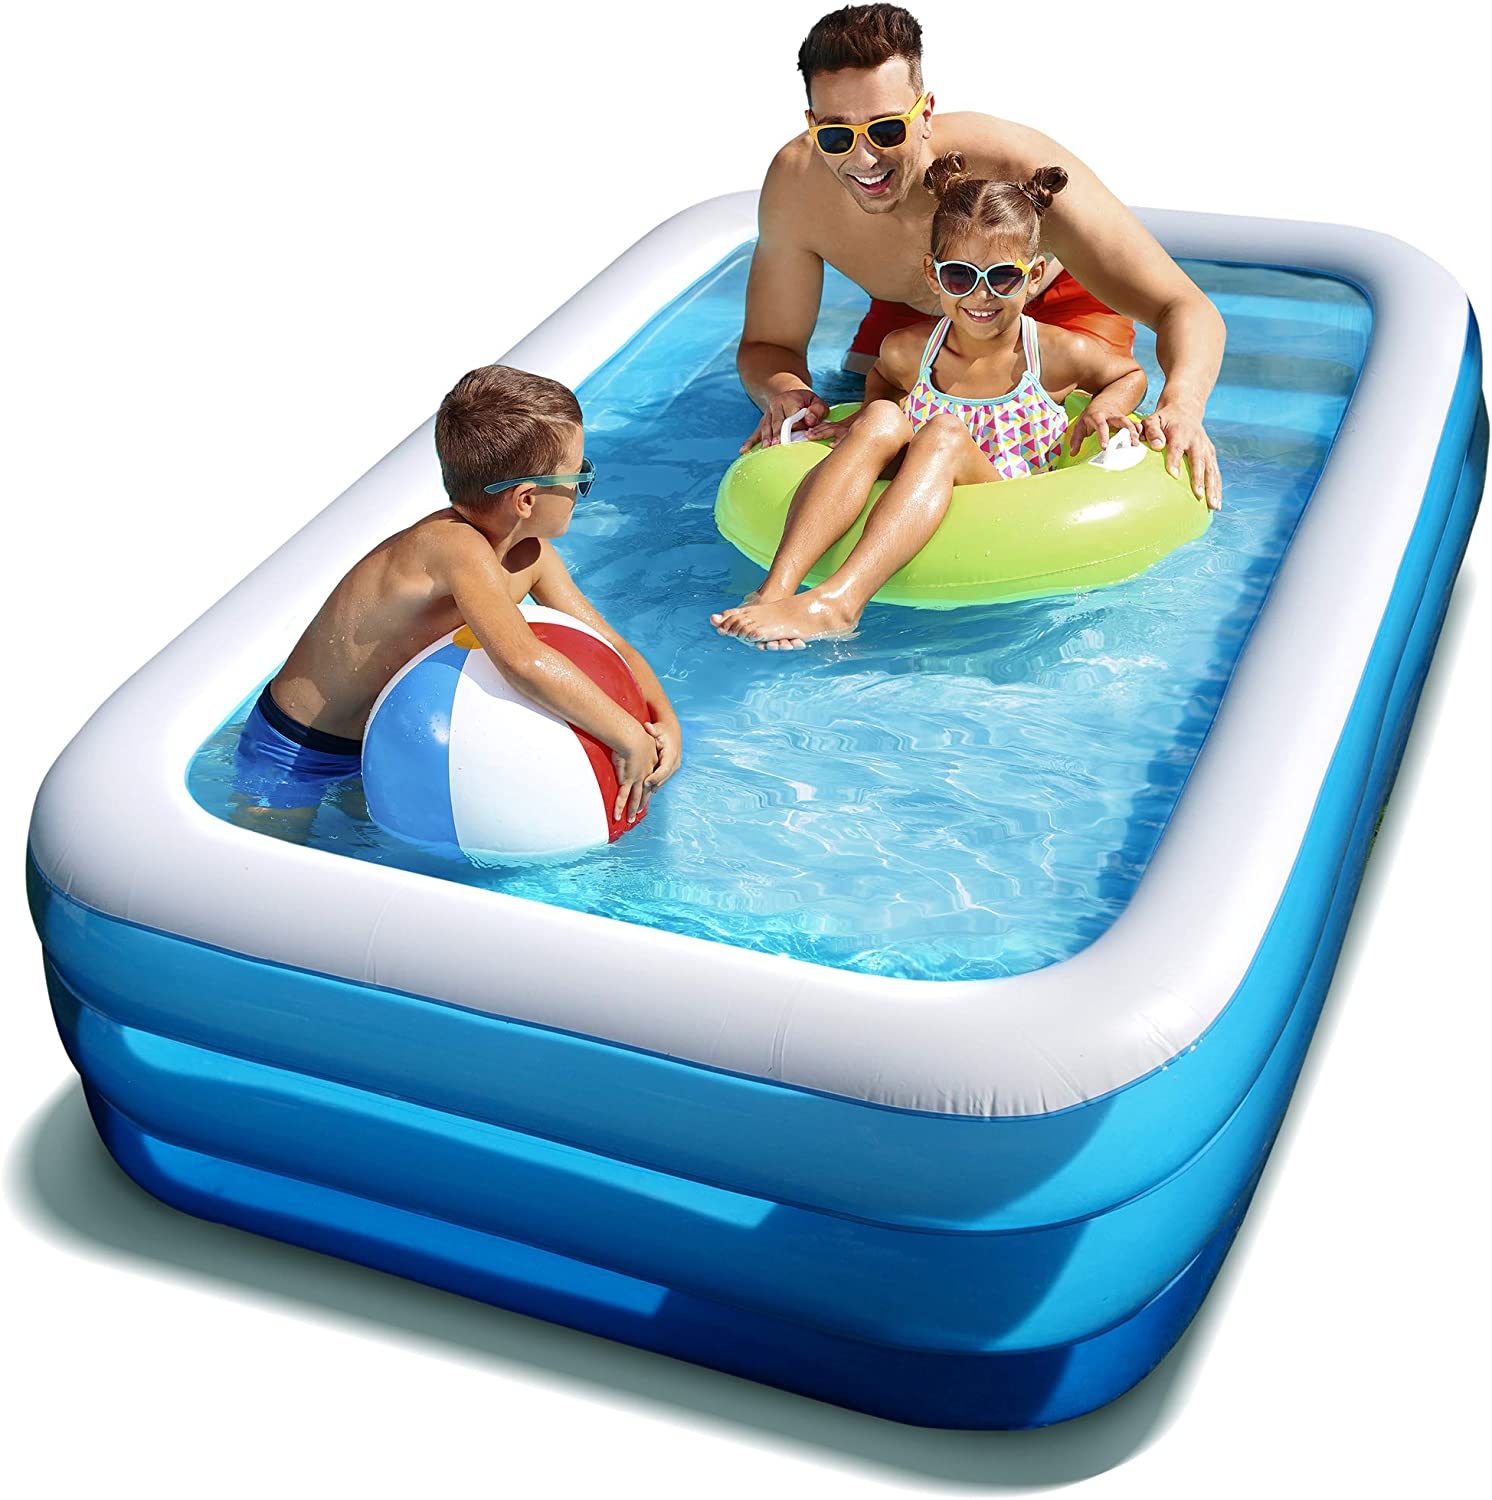 Large 10 Ft Inflatable Swimming Pool For Whole Family Easy To Set Up Maintain Pool For Backyards 120x73x22 Inch Outdoor Rectangular Pool For Adults Kids